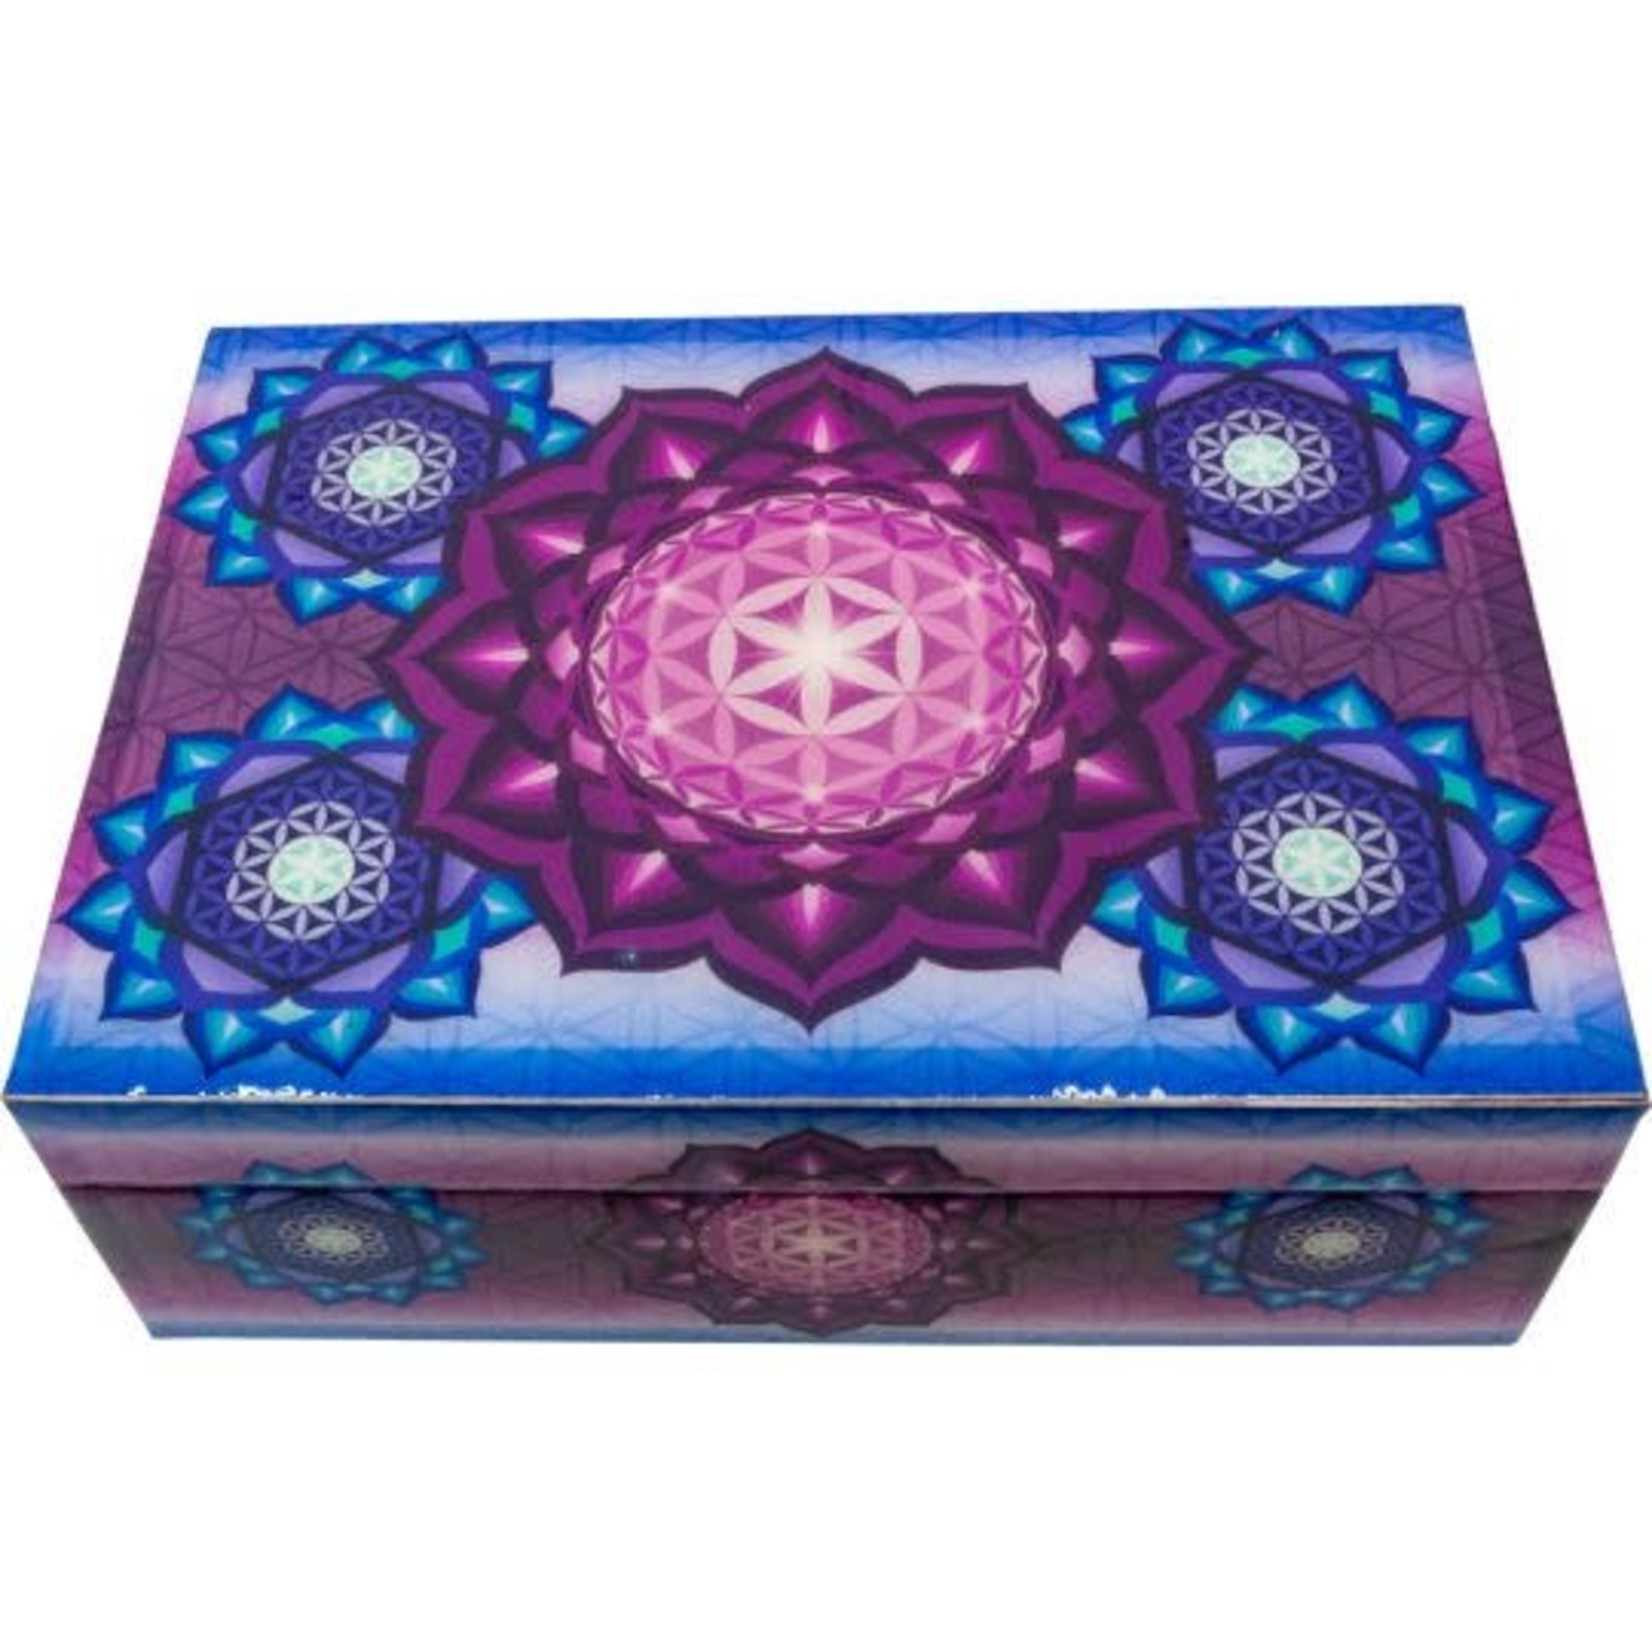 Wooden Printed Box- Printed Top Flower Of Life